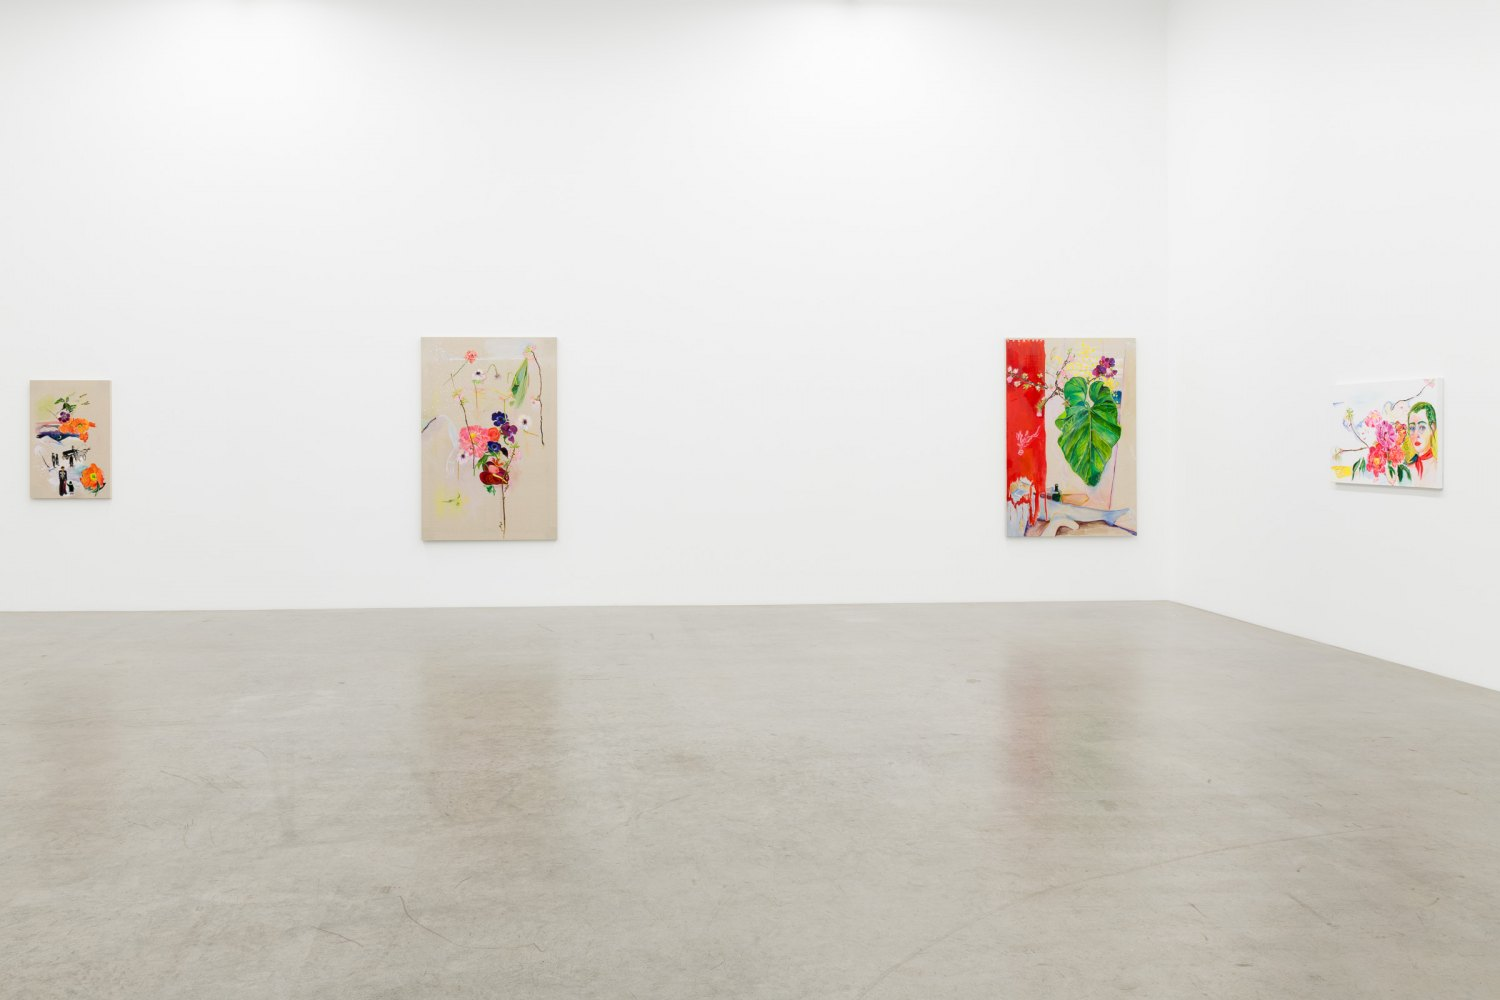 Installation view, Emily Sundblad, Toilet Feelings Are Normal, Galerie Neu, 2019